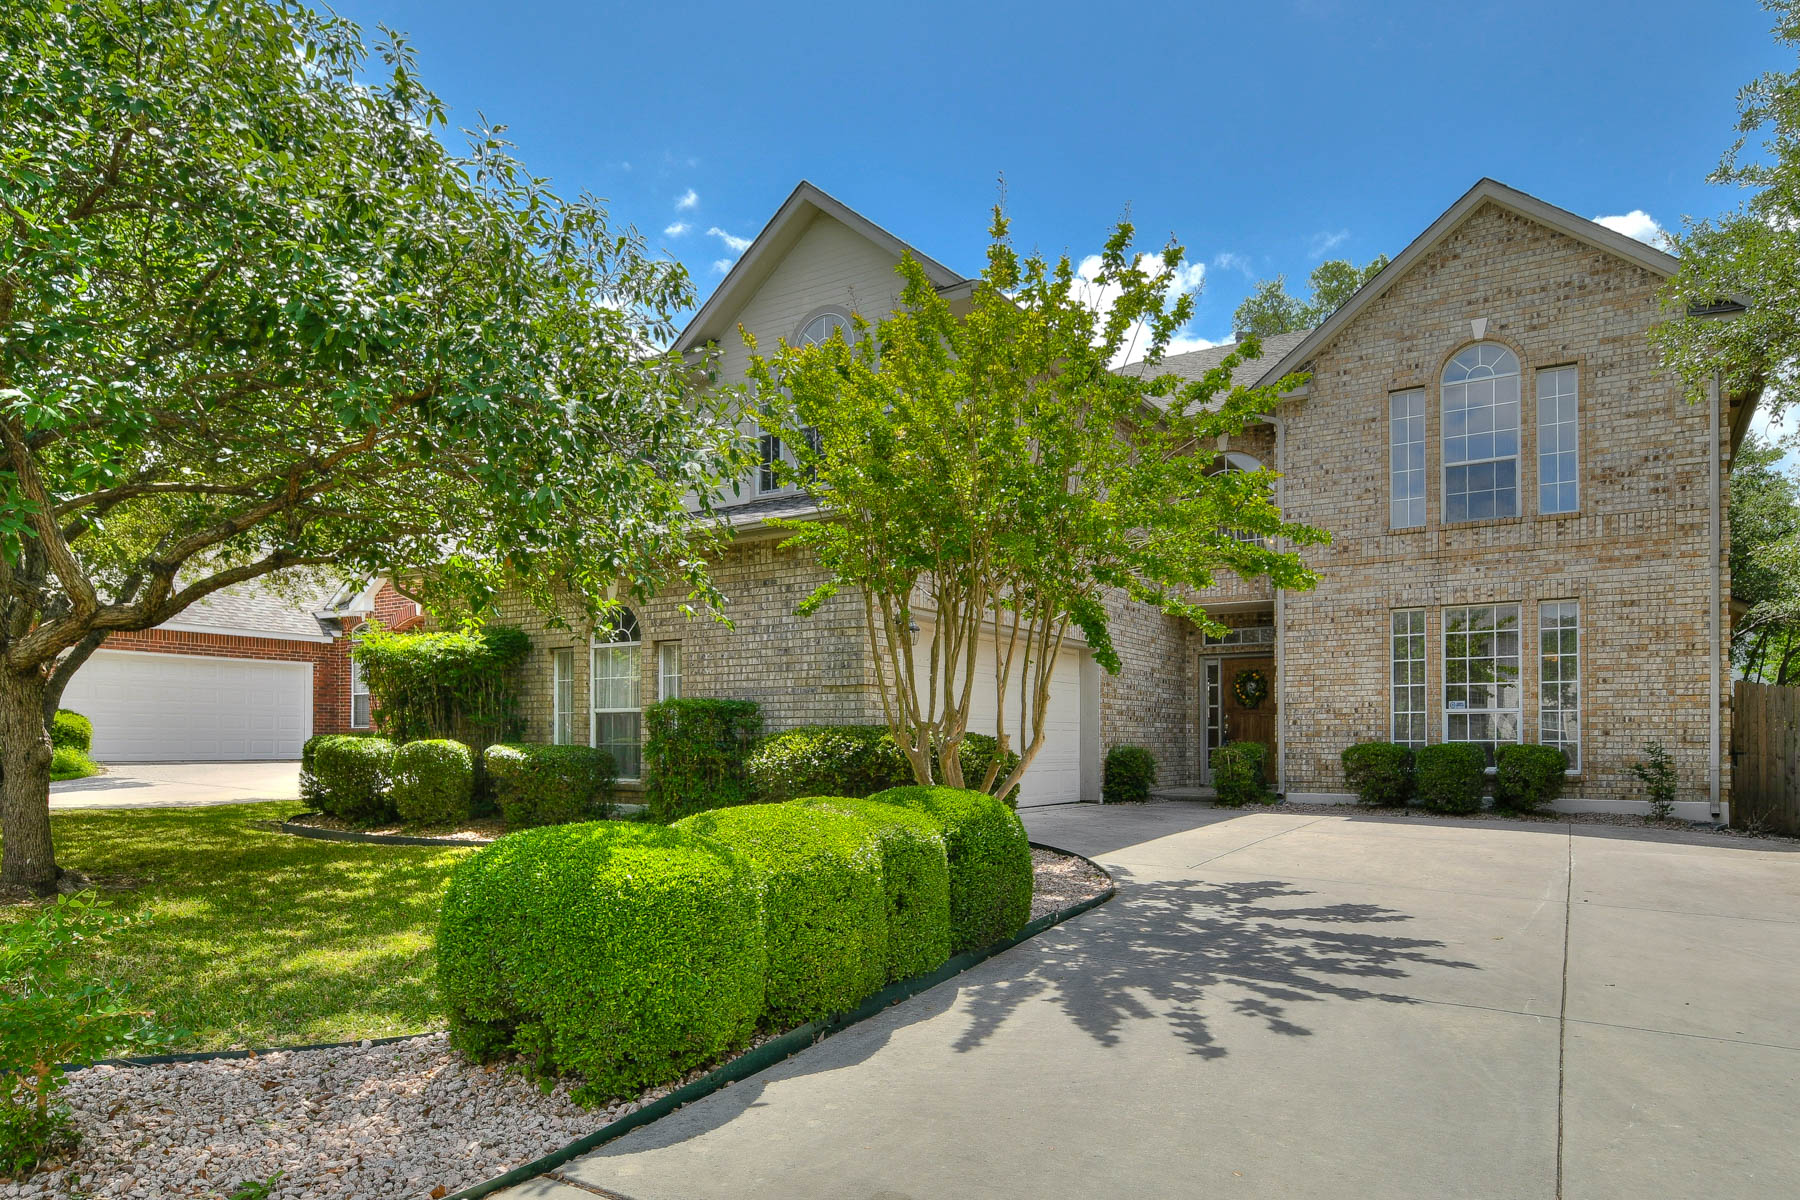 Single Family Home for Sale at Immaculate Remodel The Village at Inwood 2522 Steepleway San Antonio, Texas, 78248 United States